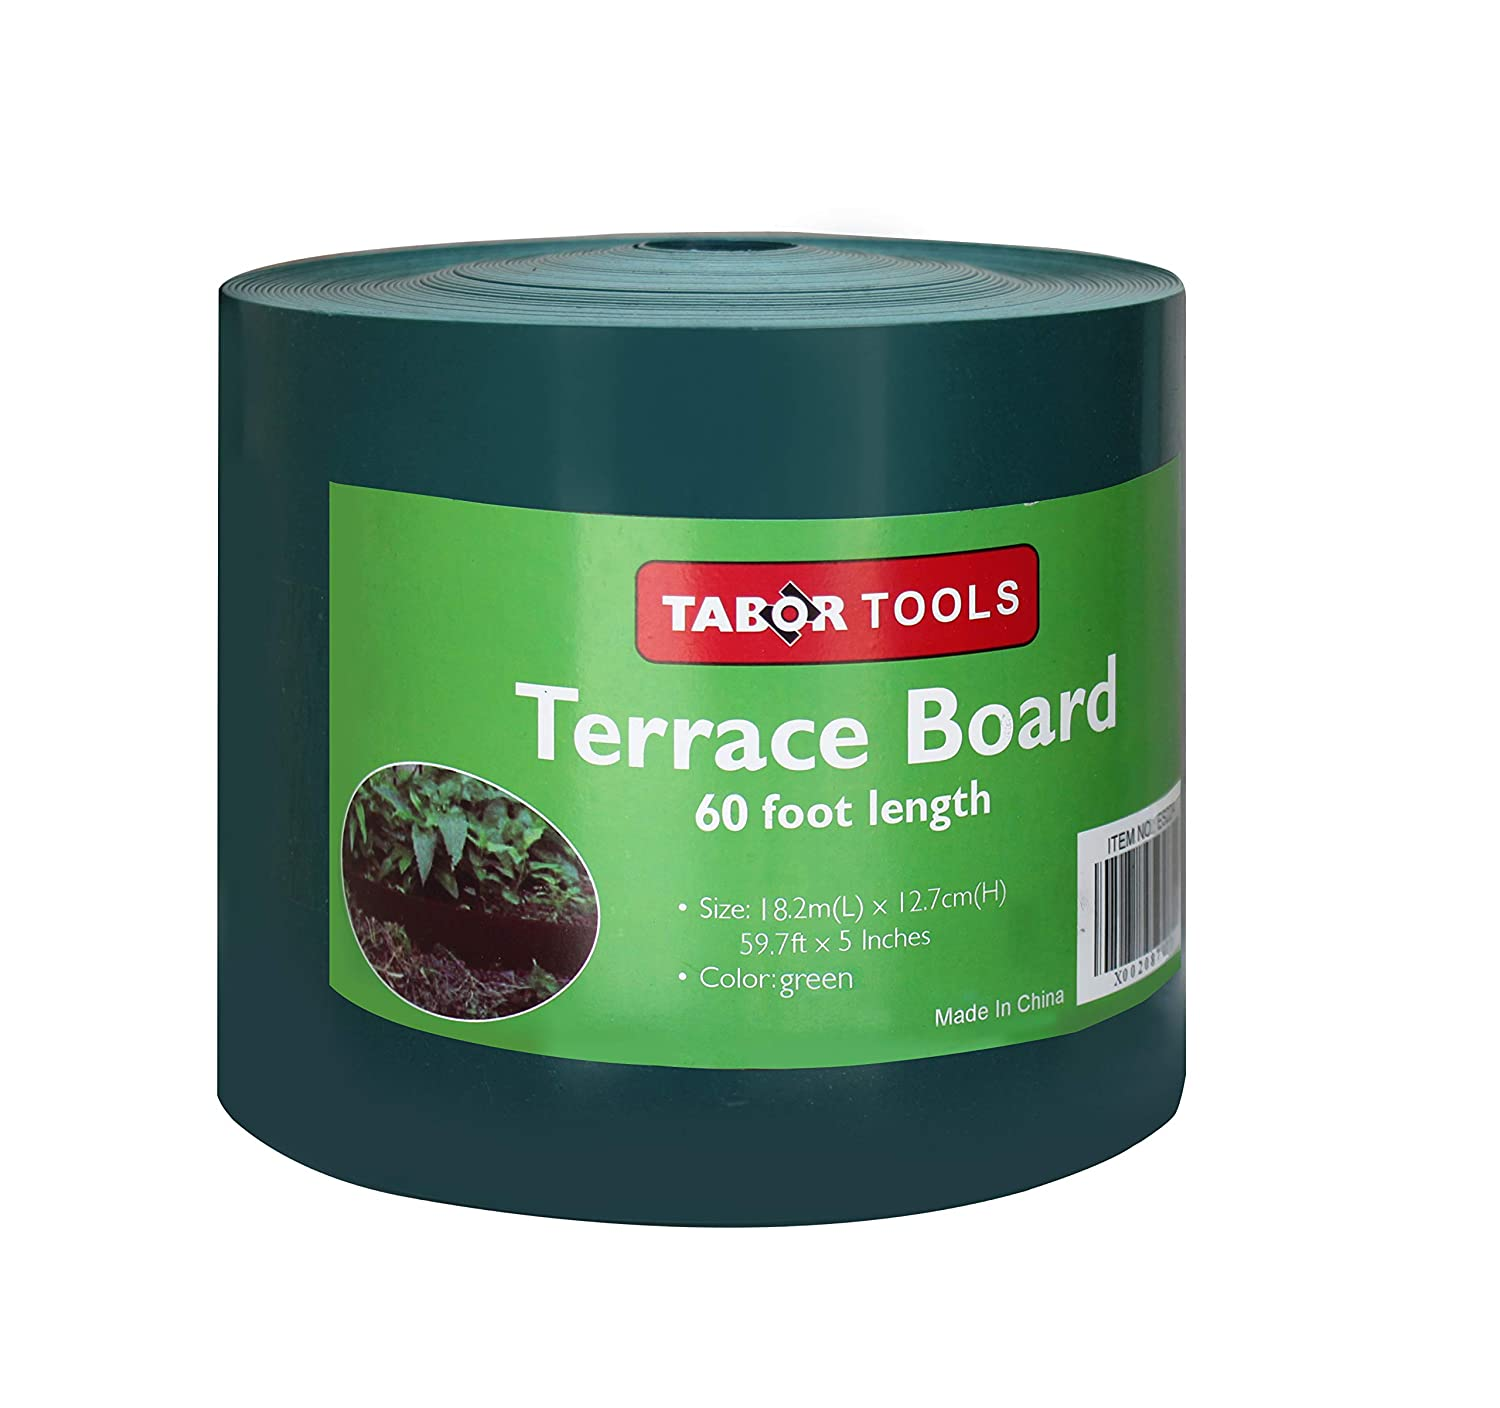 40 Feet, Black Landscape Edging Coil TABOR TOOLS Terrace Board 5 Inch High ES21. 1//25 Inch Thick